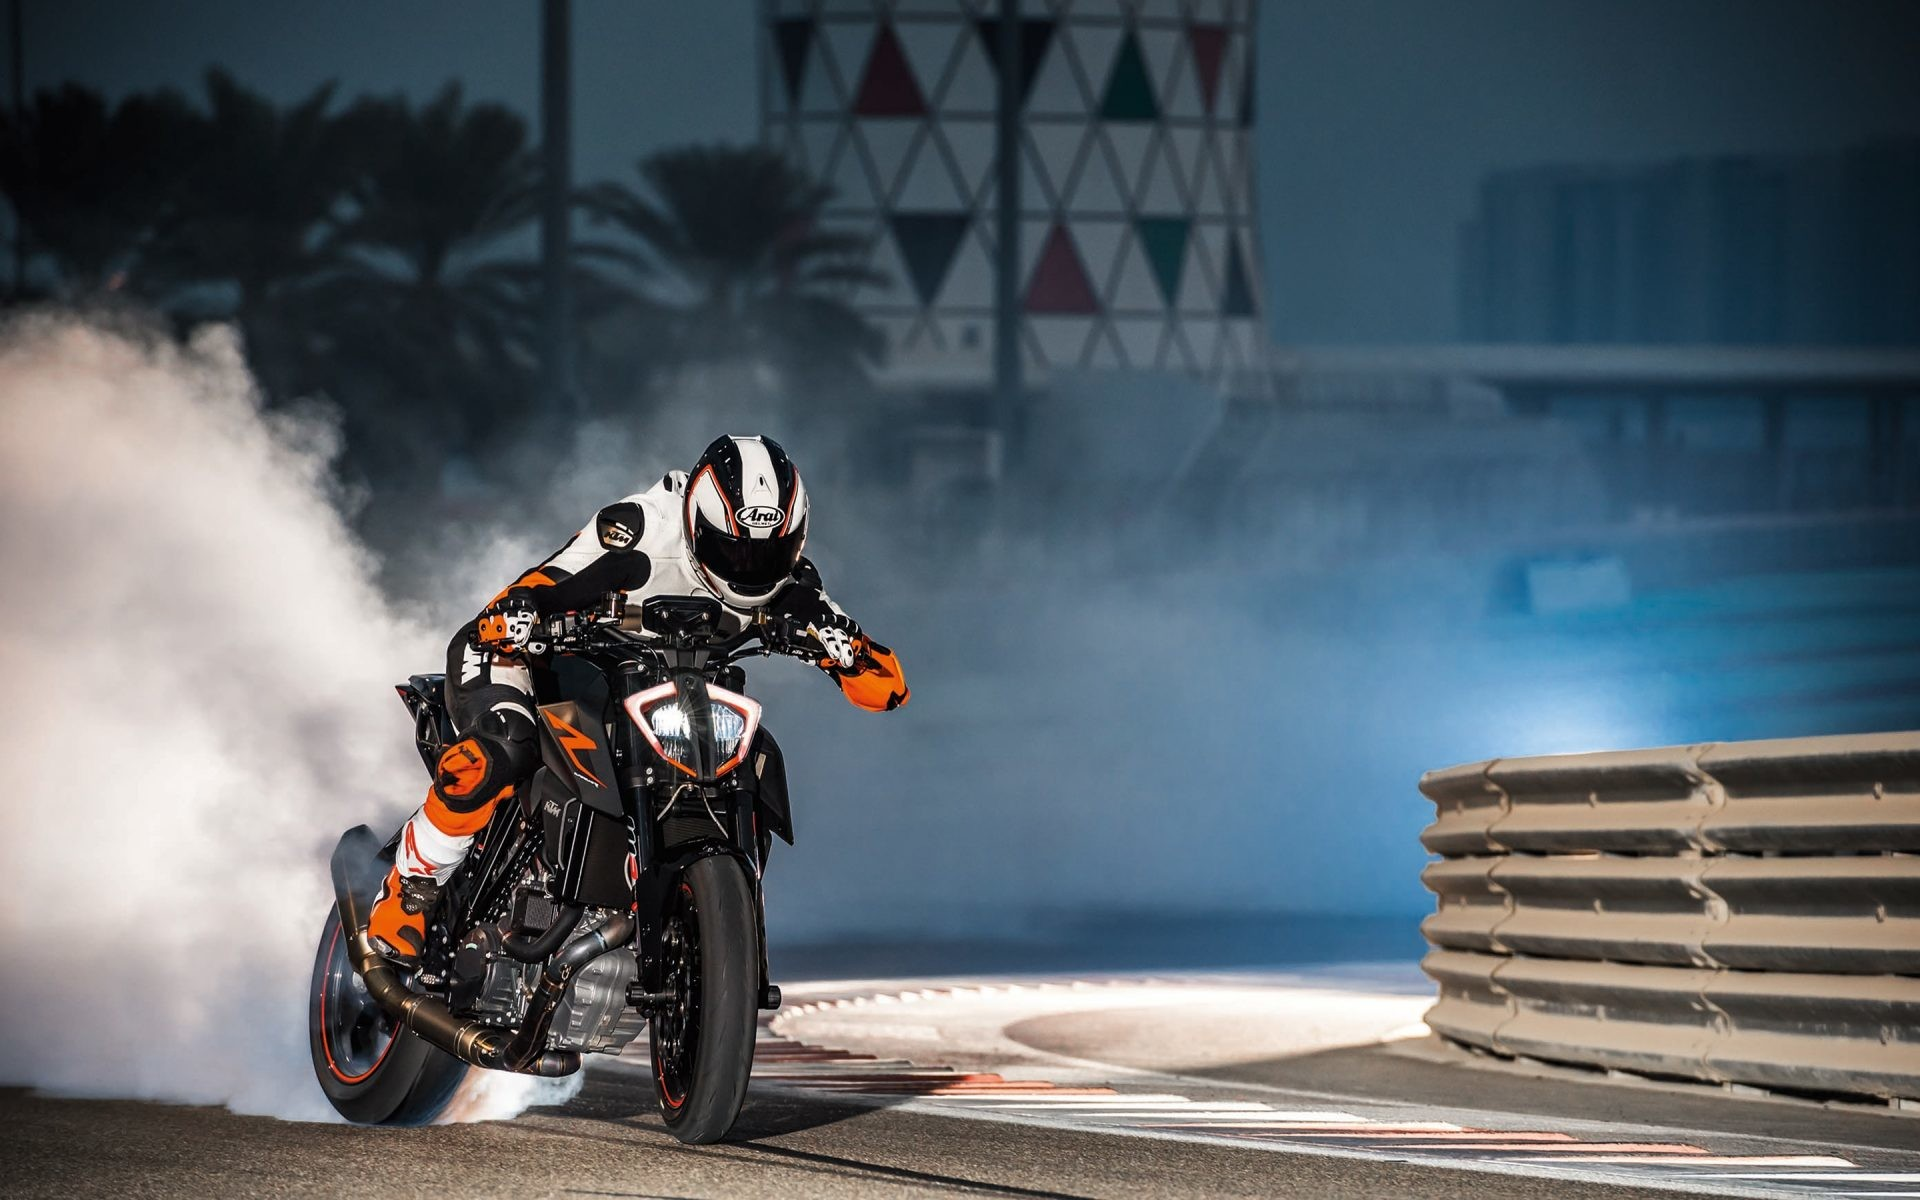 Res: 1920x1200, Download Motorcycles Bikes HD Wallpaper Background Picture ktm 1290 super  duke wide